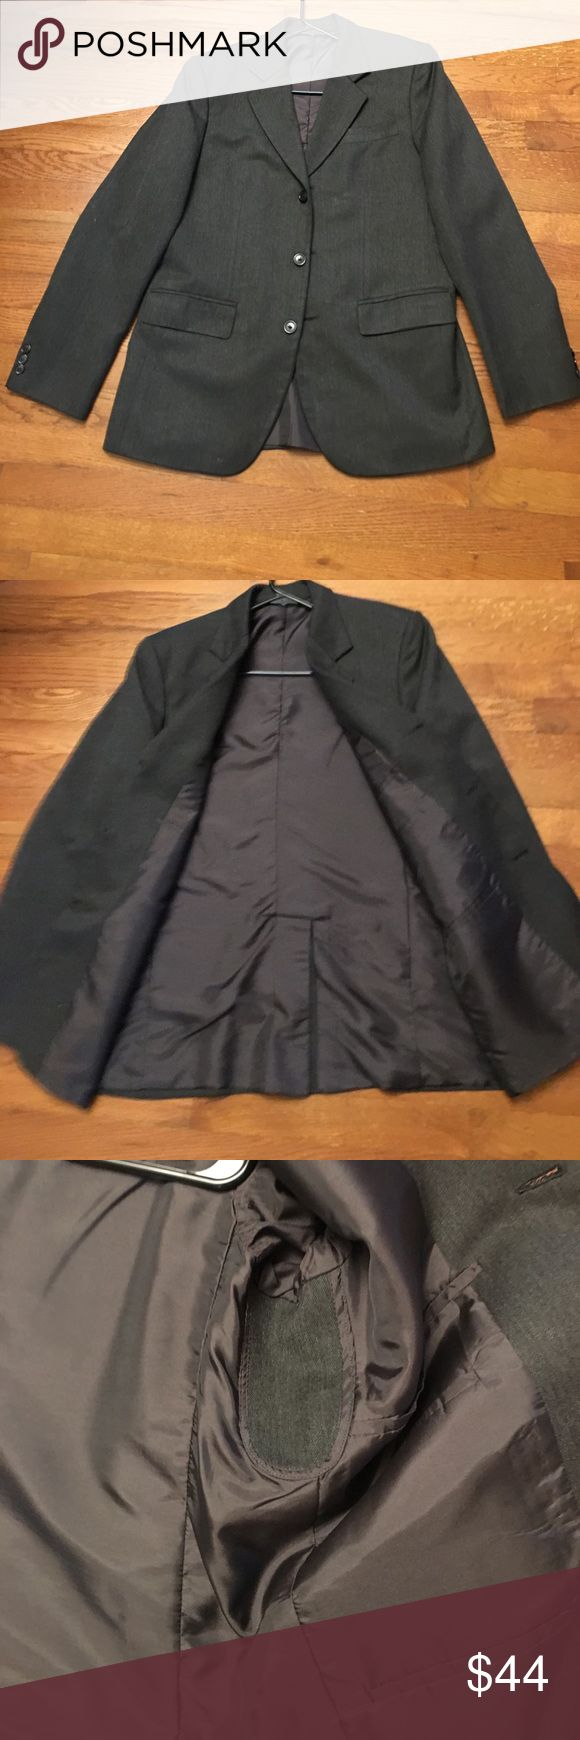 Men's grey sport coat. Nearly new. Size 35R Charcoal 3 button nearly new Herringbone weave sport coat. Size 35R. Sleeves are 17 inches long. Shoulders are 16 inches across.  Mid weight fabric.  Fully lined  4 interior pockets. Suits & Blazers Sport Coats & Blazers